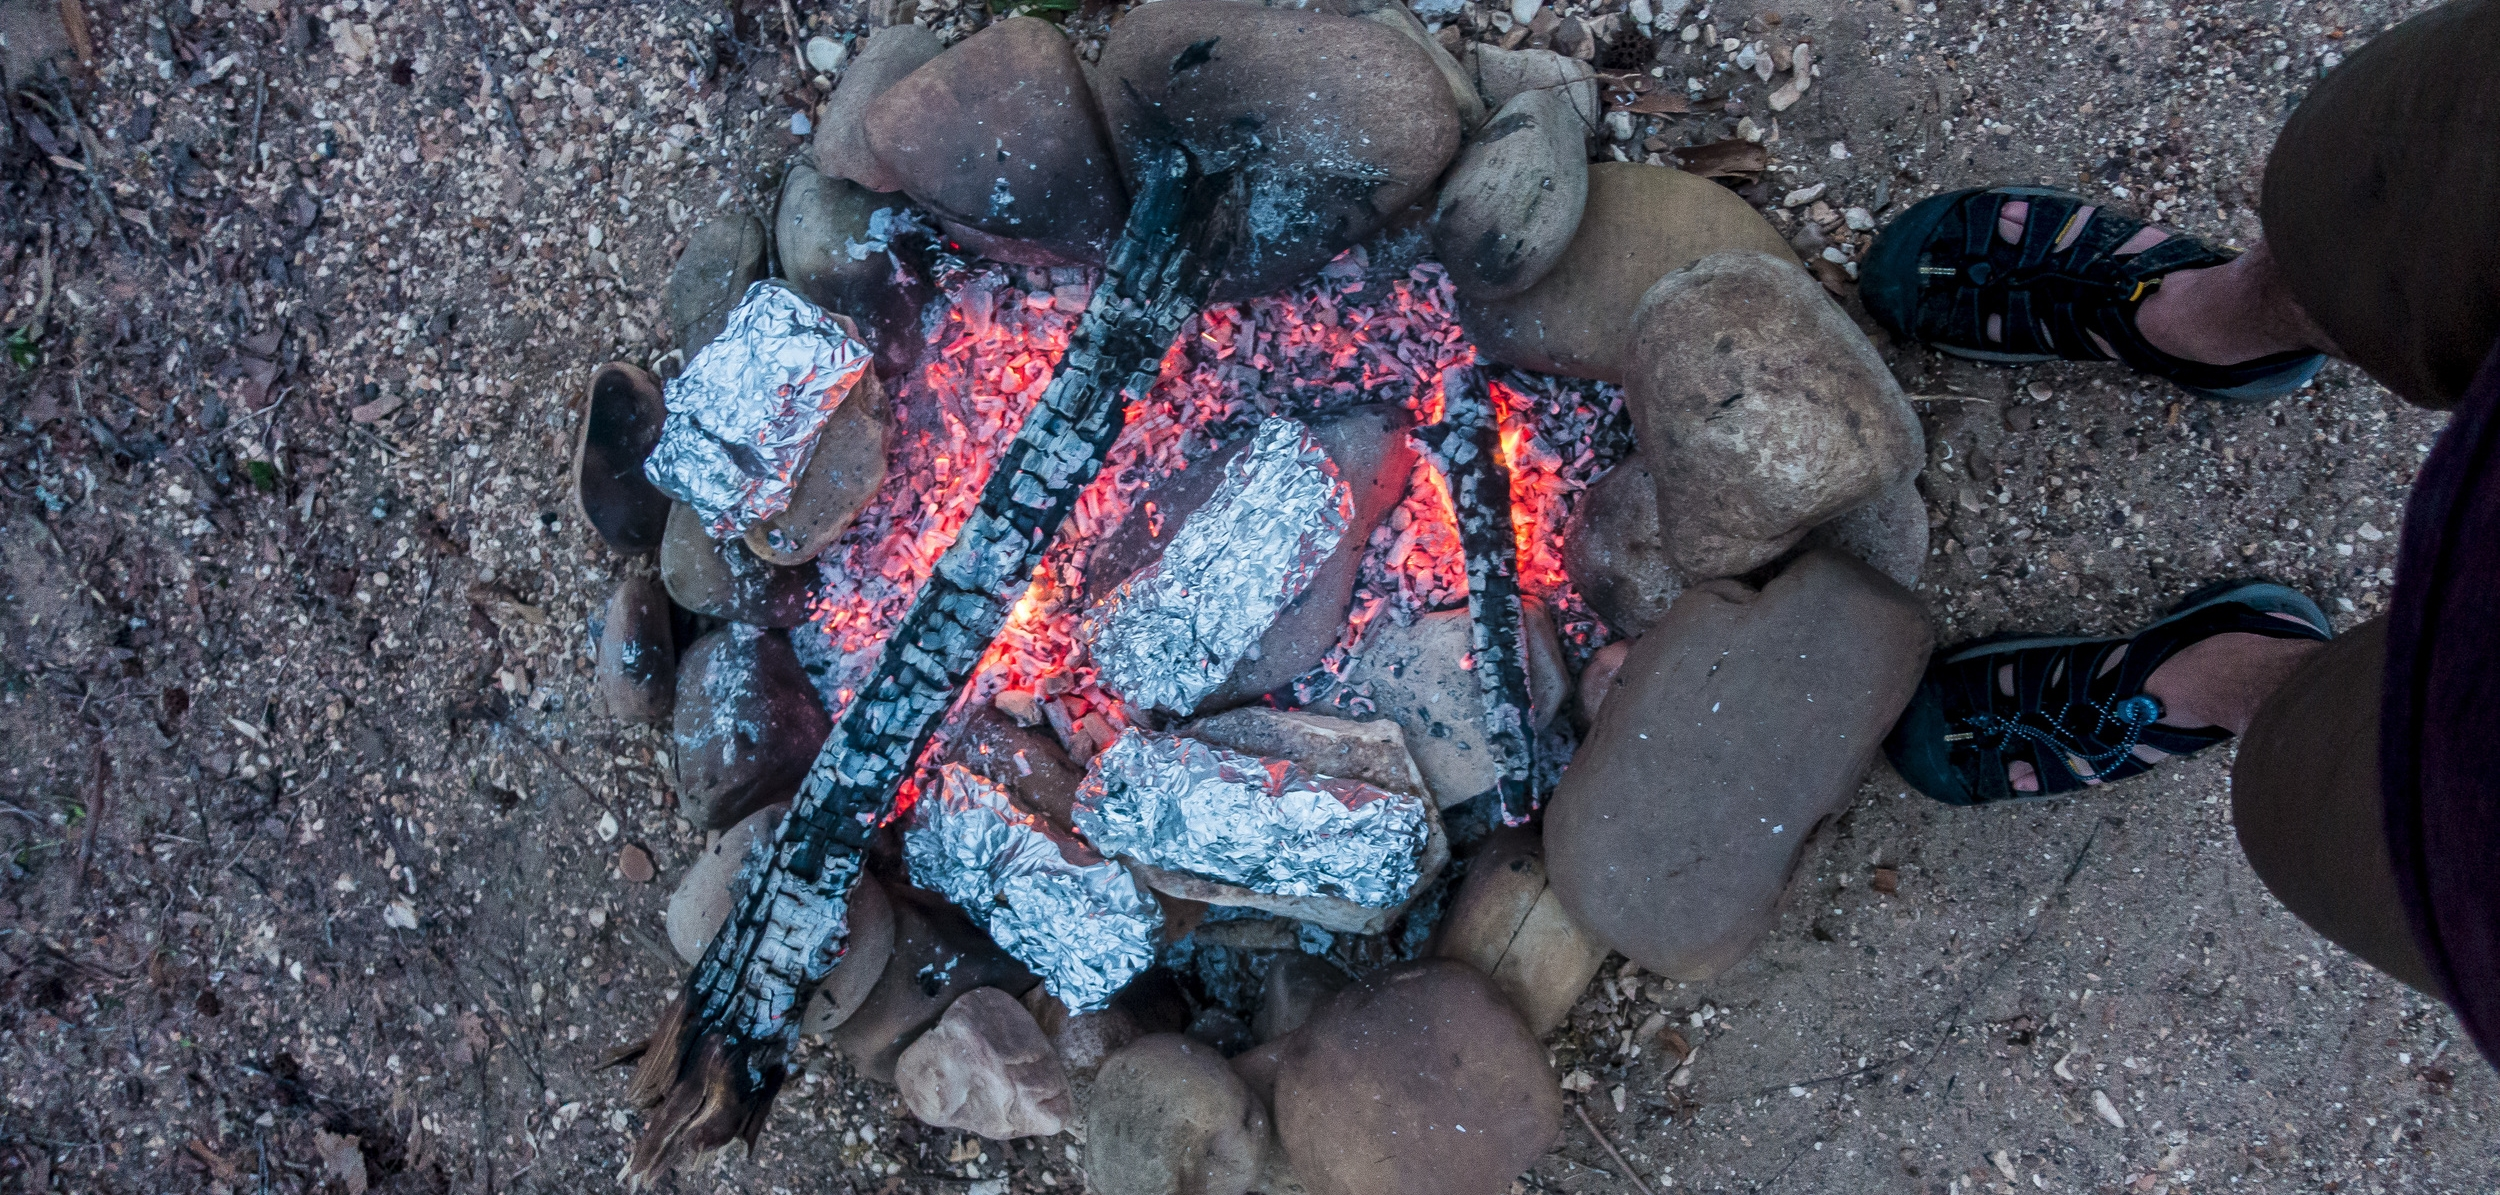 At the end of a day of hiking, making a hobo meal is as easy as building a fire and combining ingredients. Photo by Dustin Jones